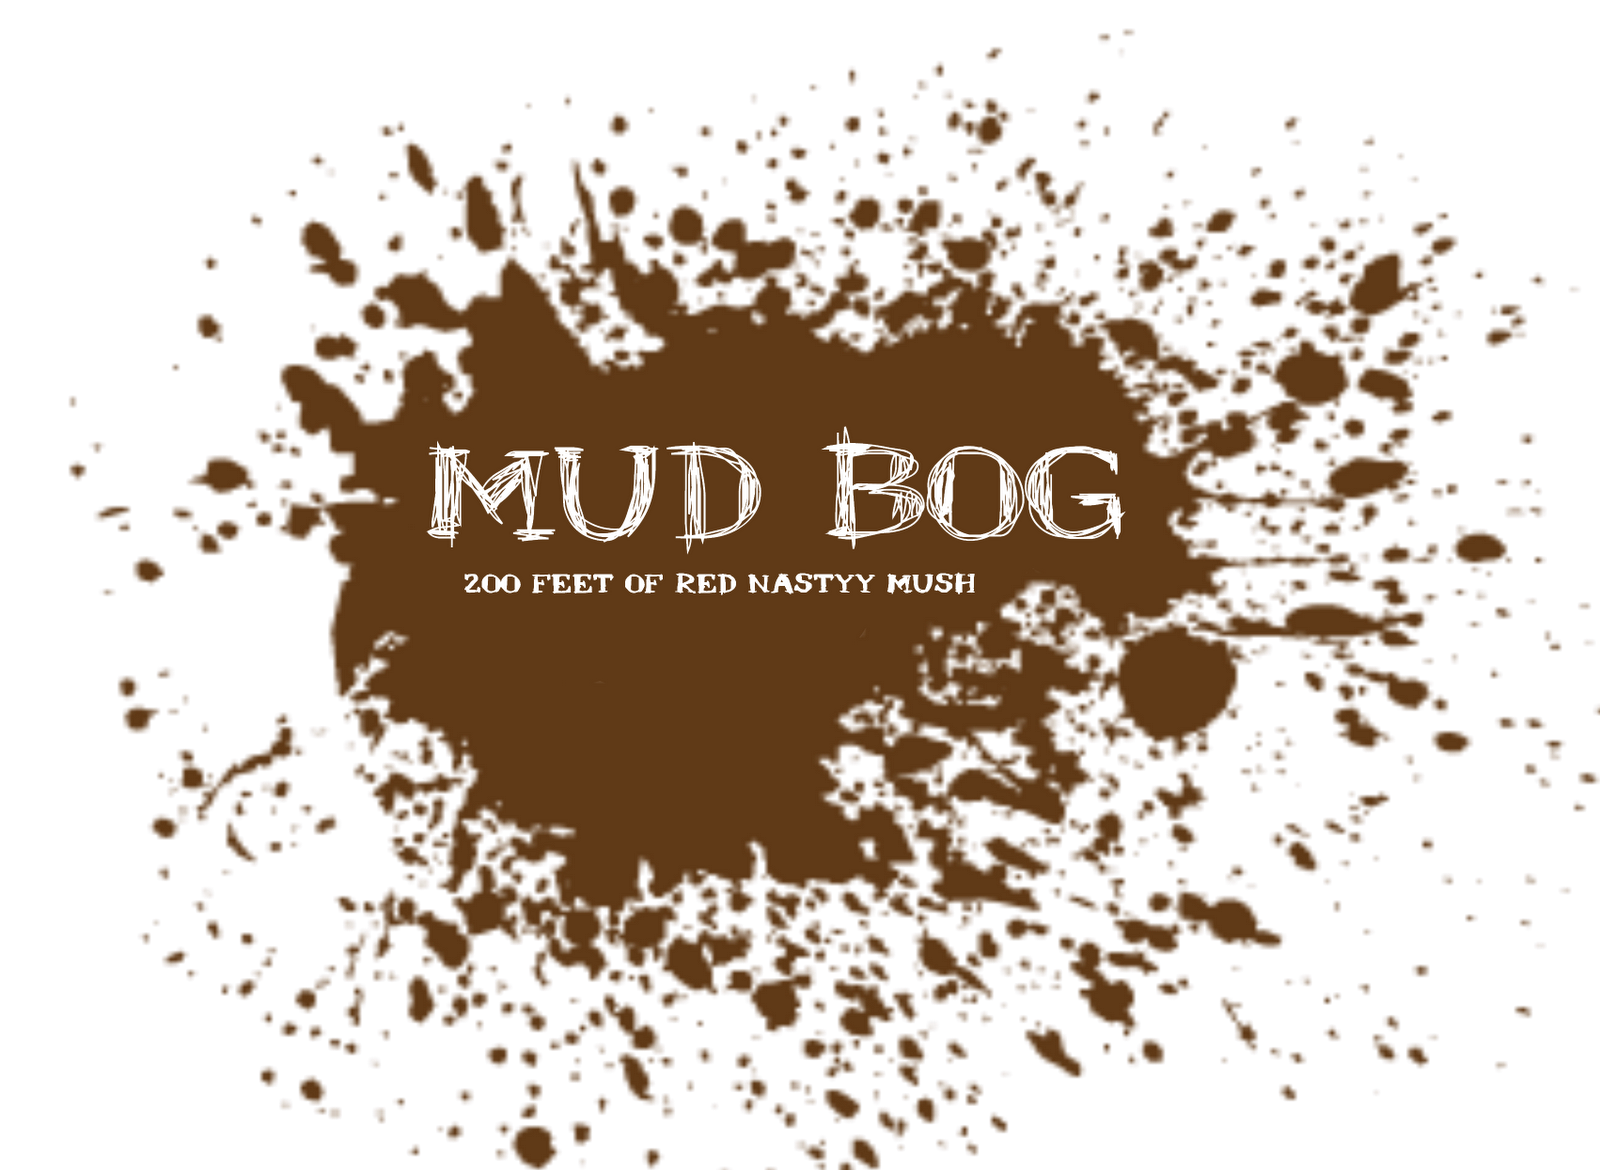 Mud splatter vector clipart images gallery for free download.